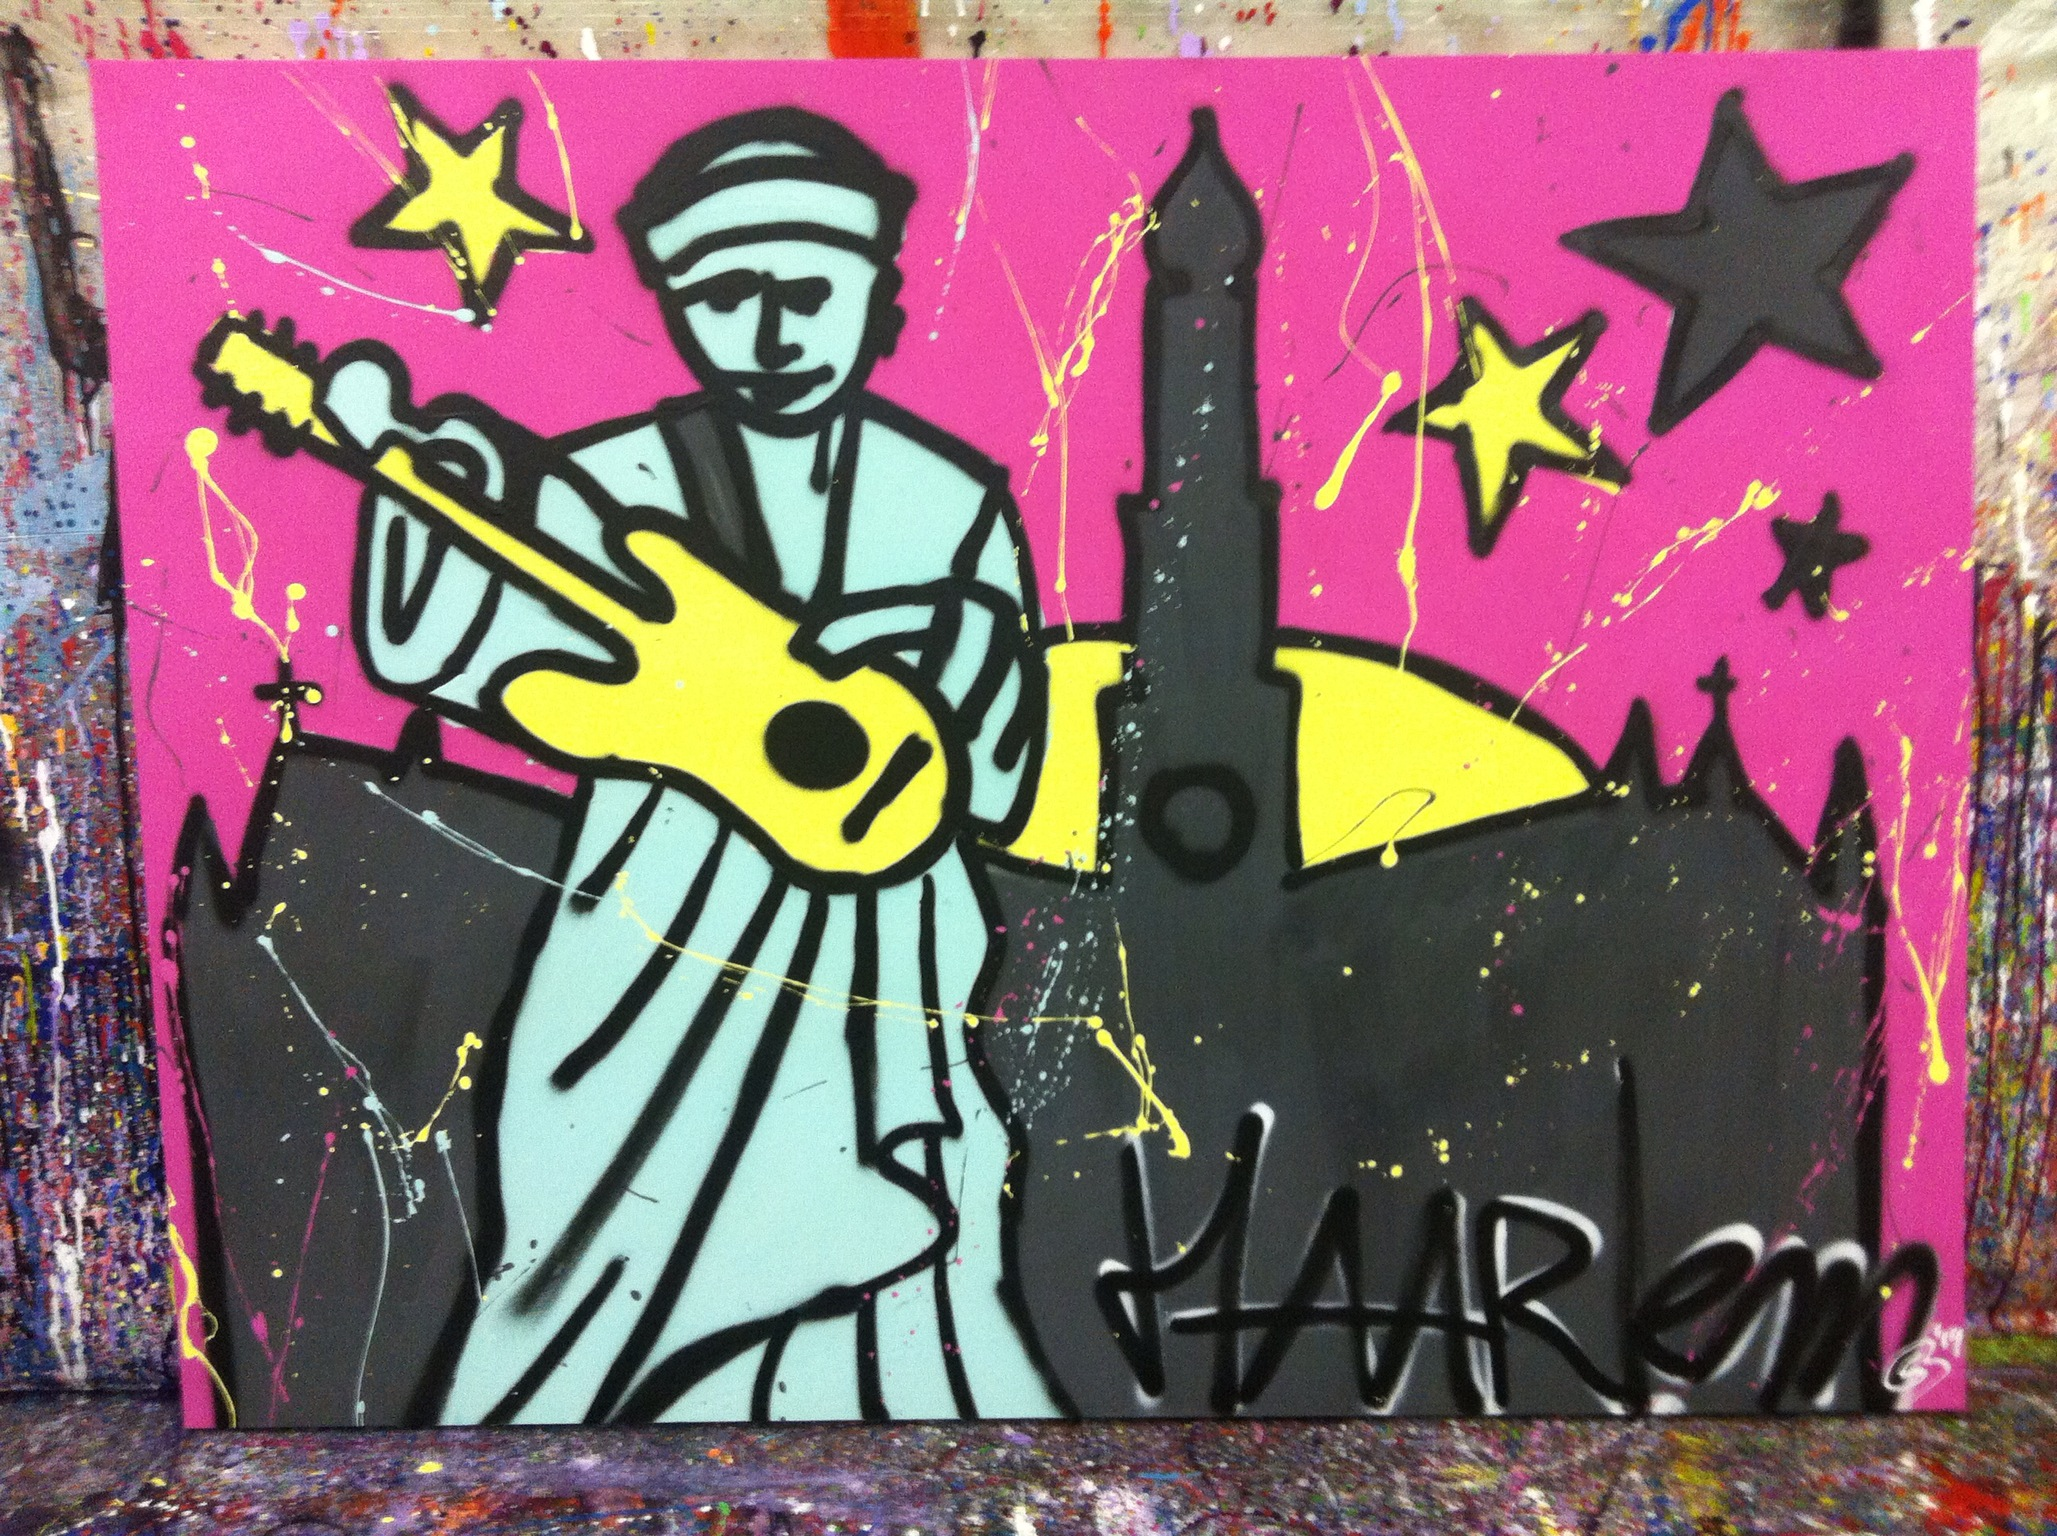 Herman Brood. Paint and roll!